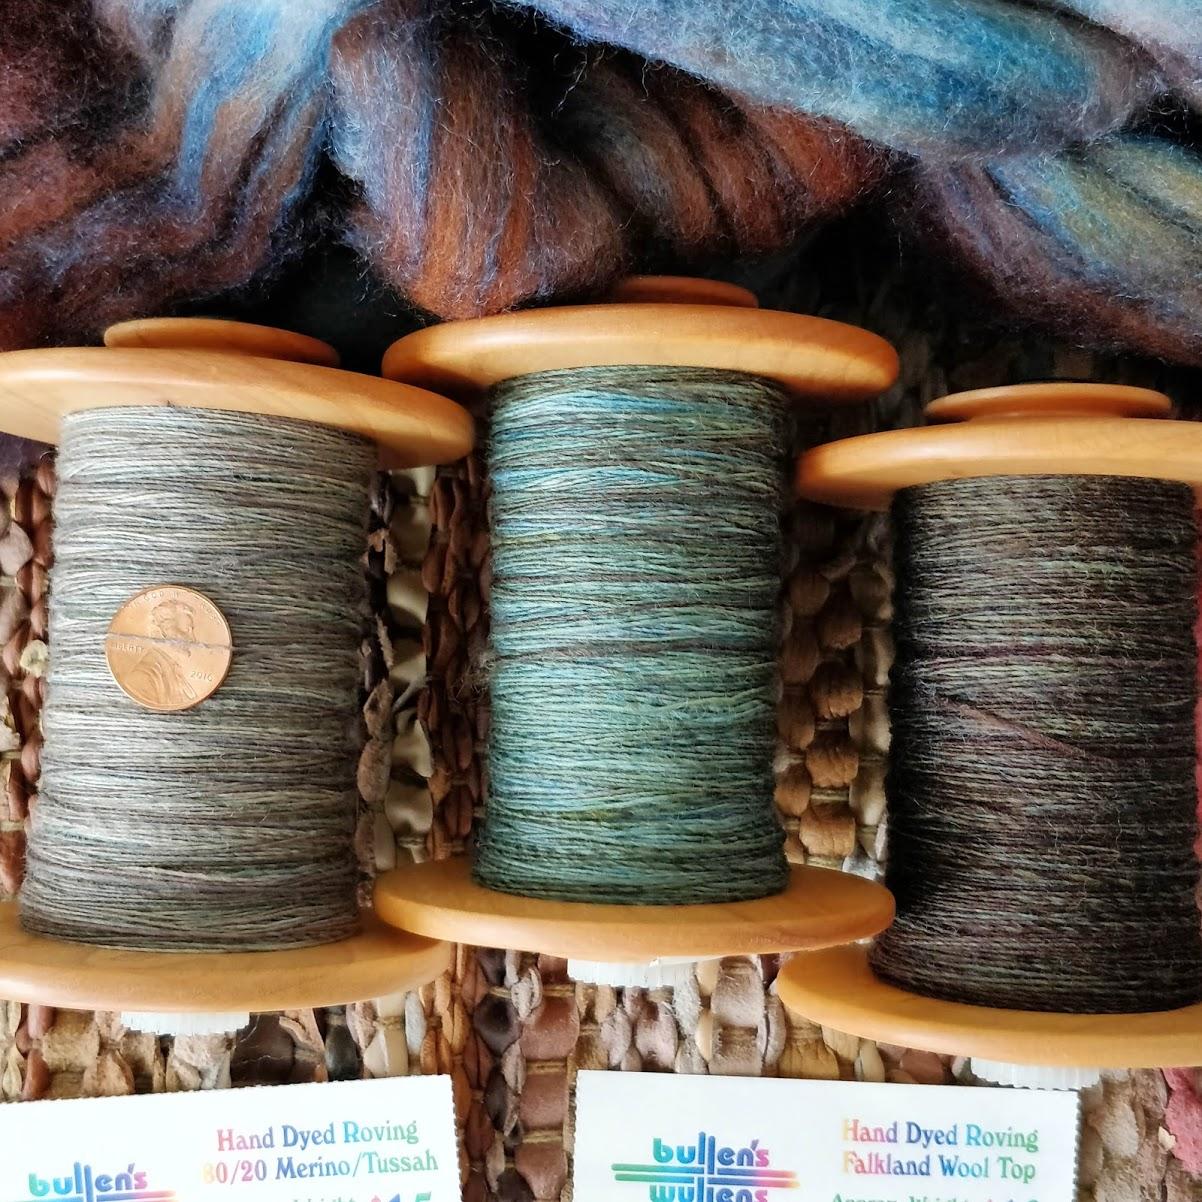 Three bobbins of fine singles with a penny for scale resting on a bit of blue and brown fibre.